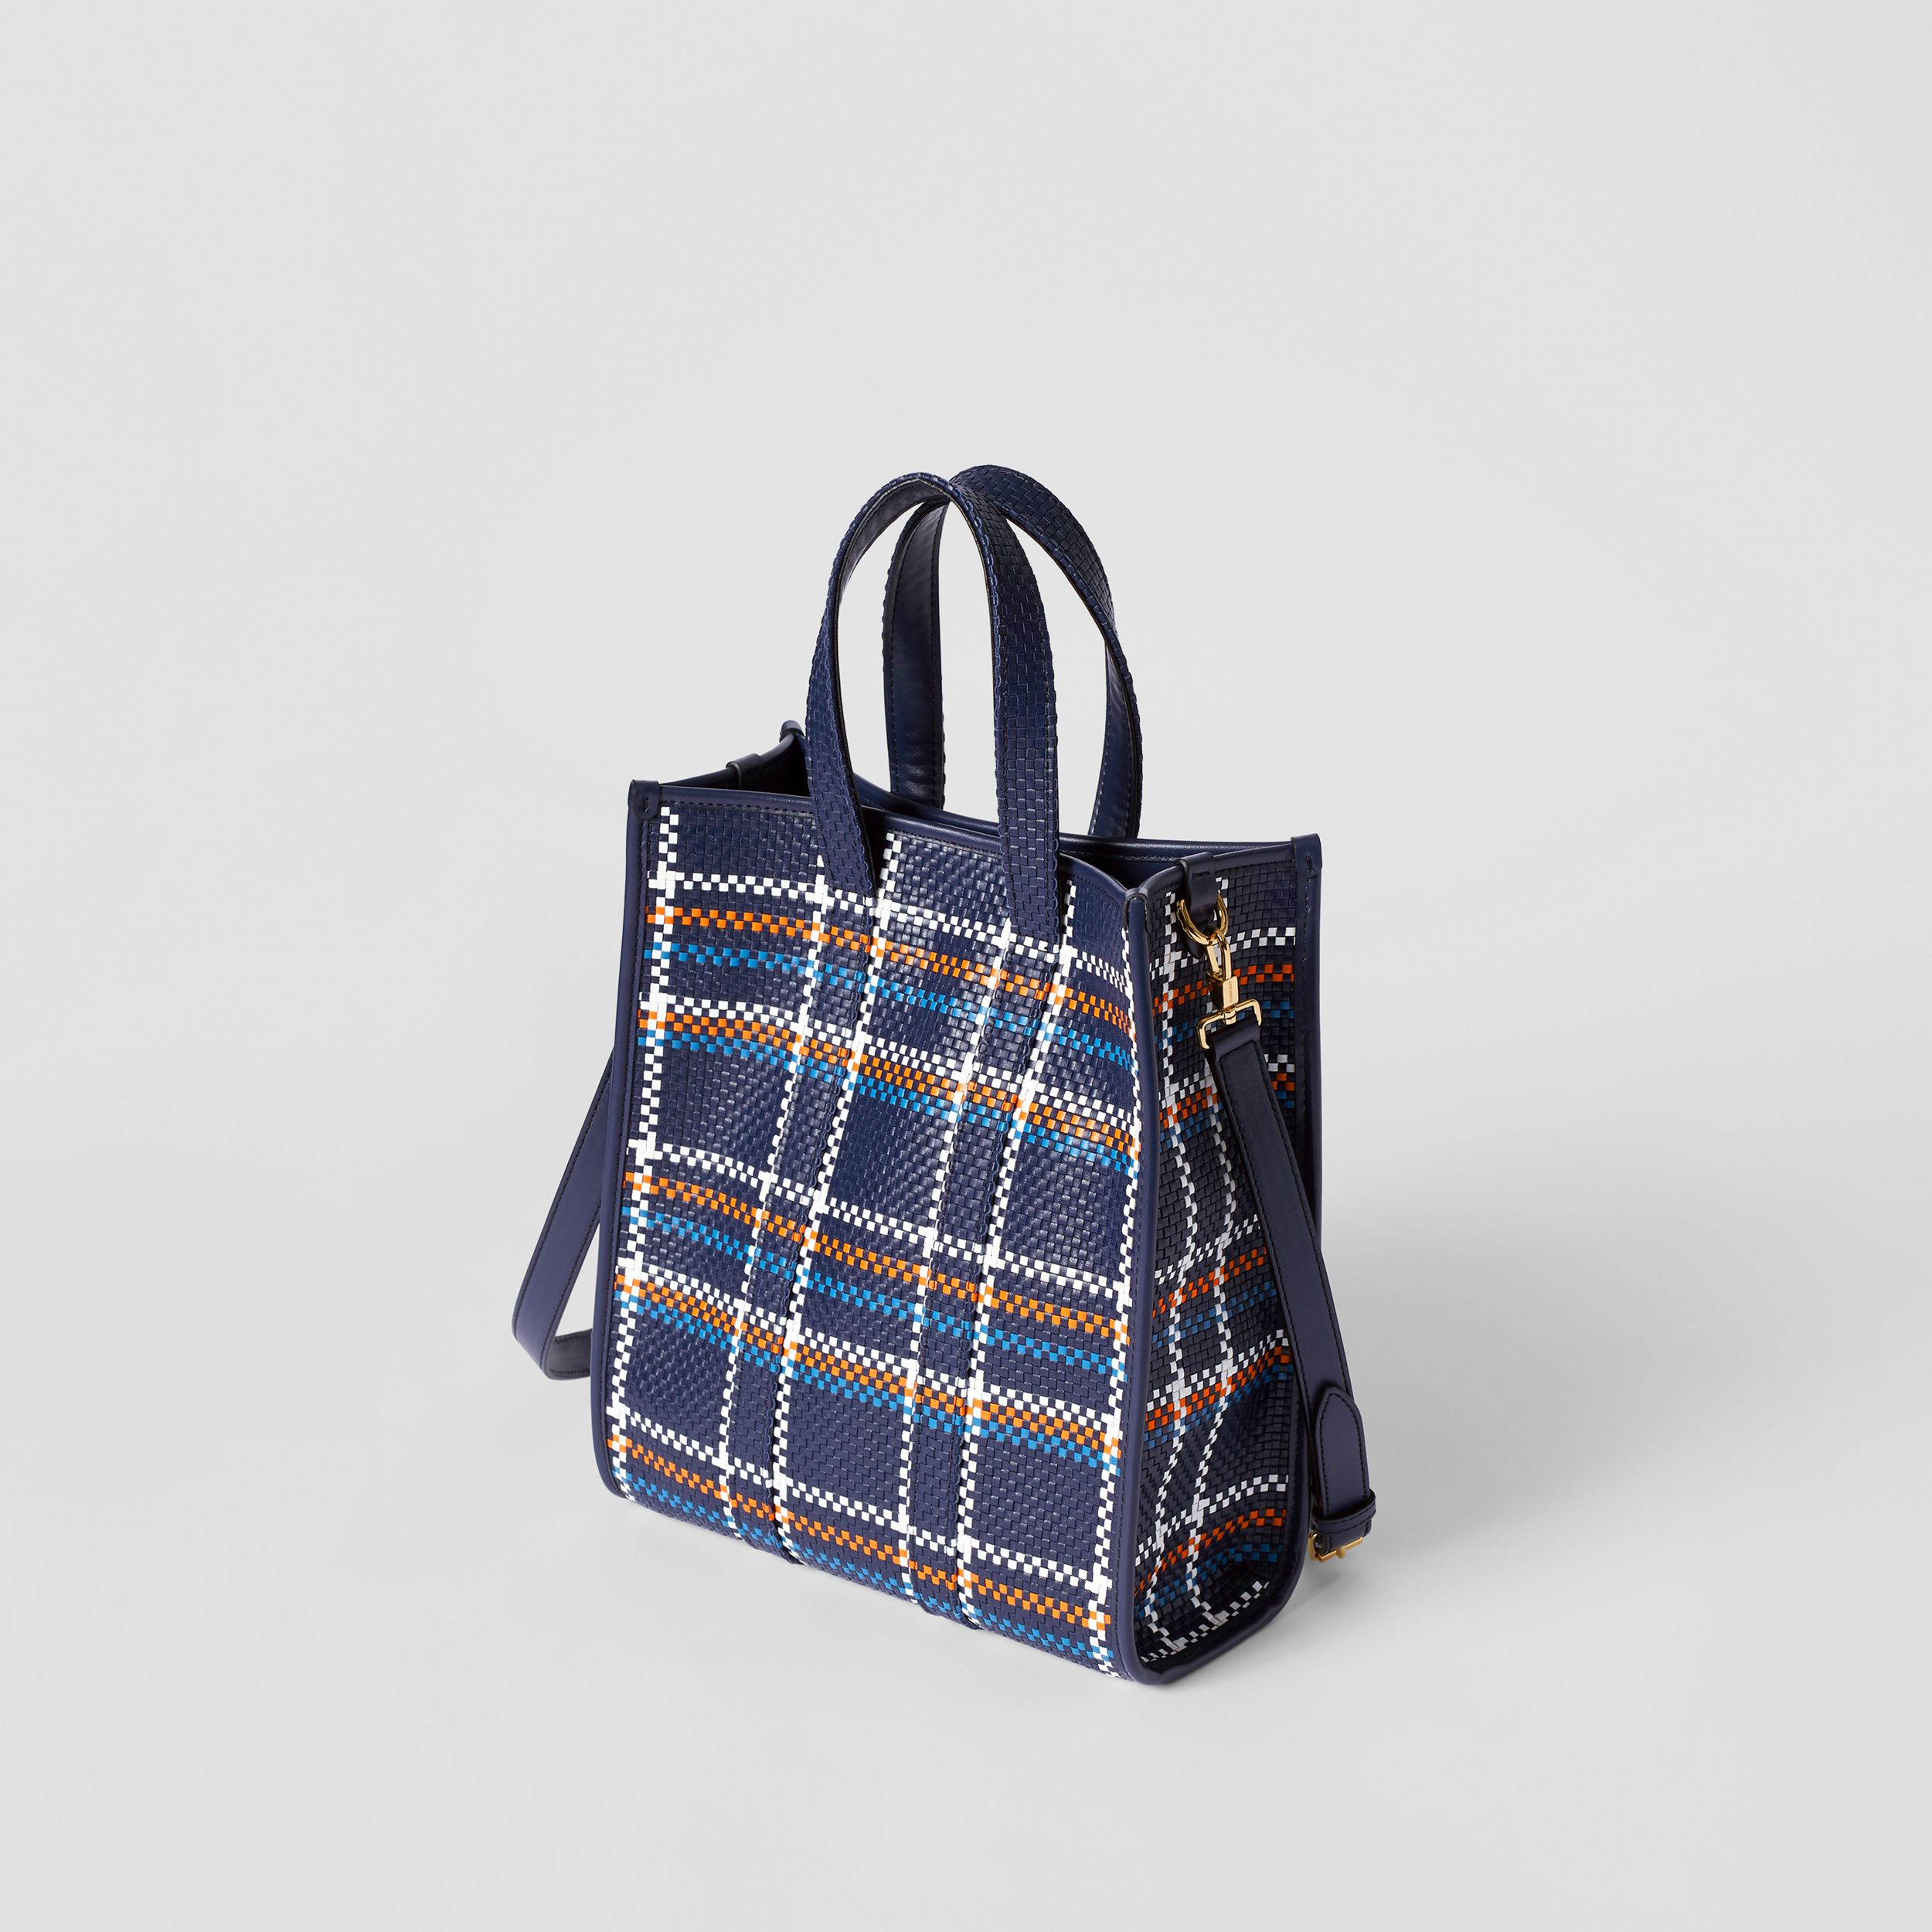 Small Latticed Leather Portrait Tote Bag in Blue/white/orange - Women | Burberry - 3